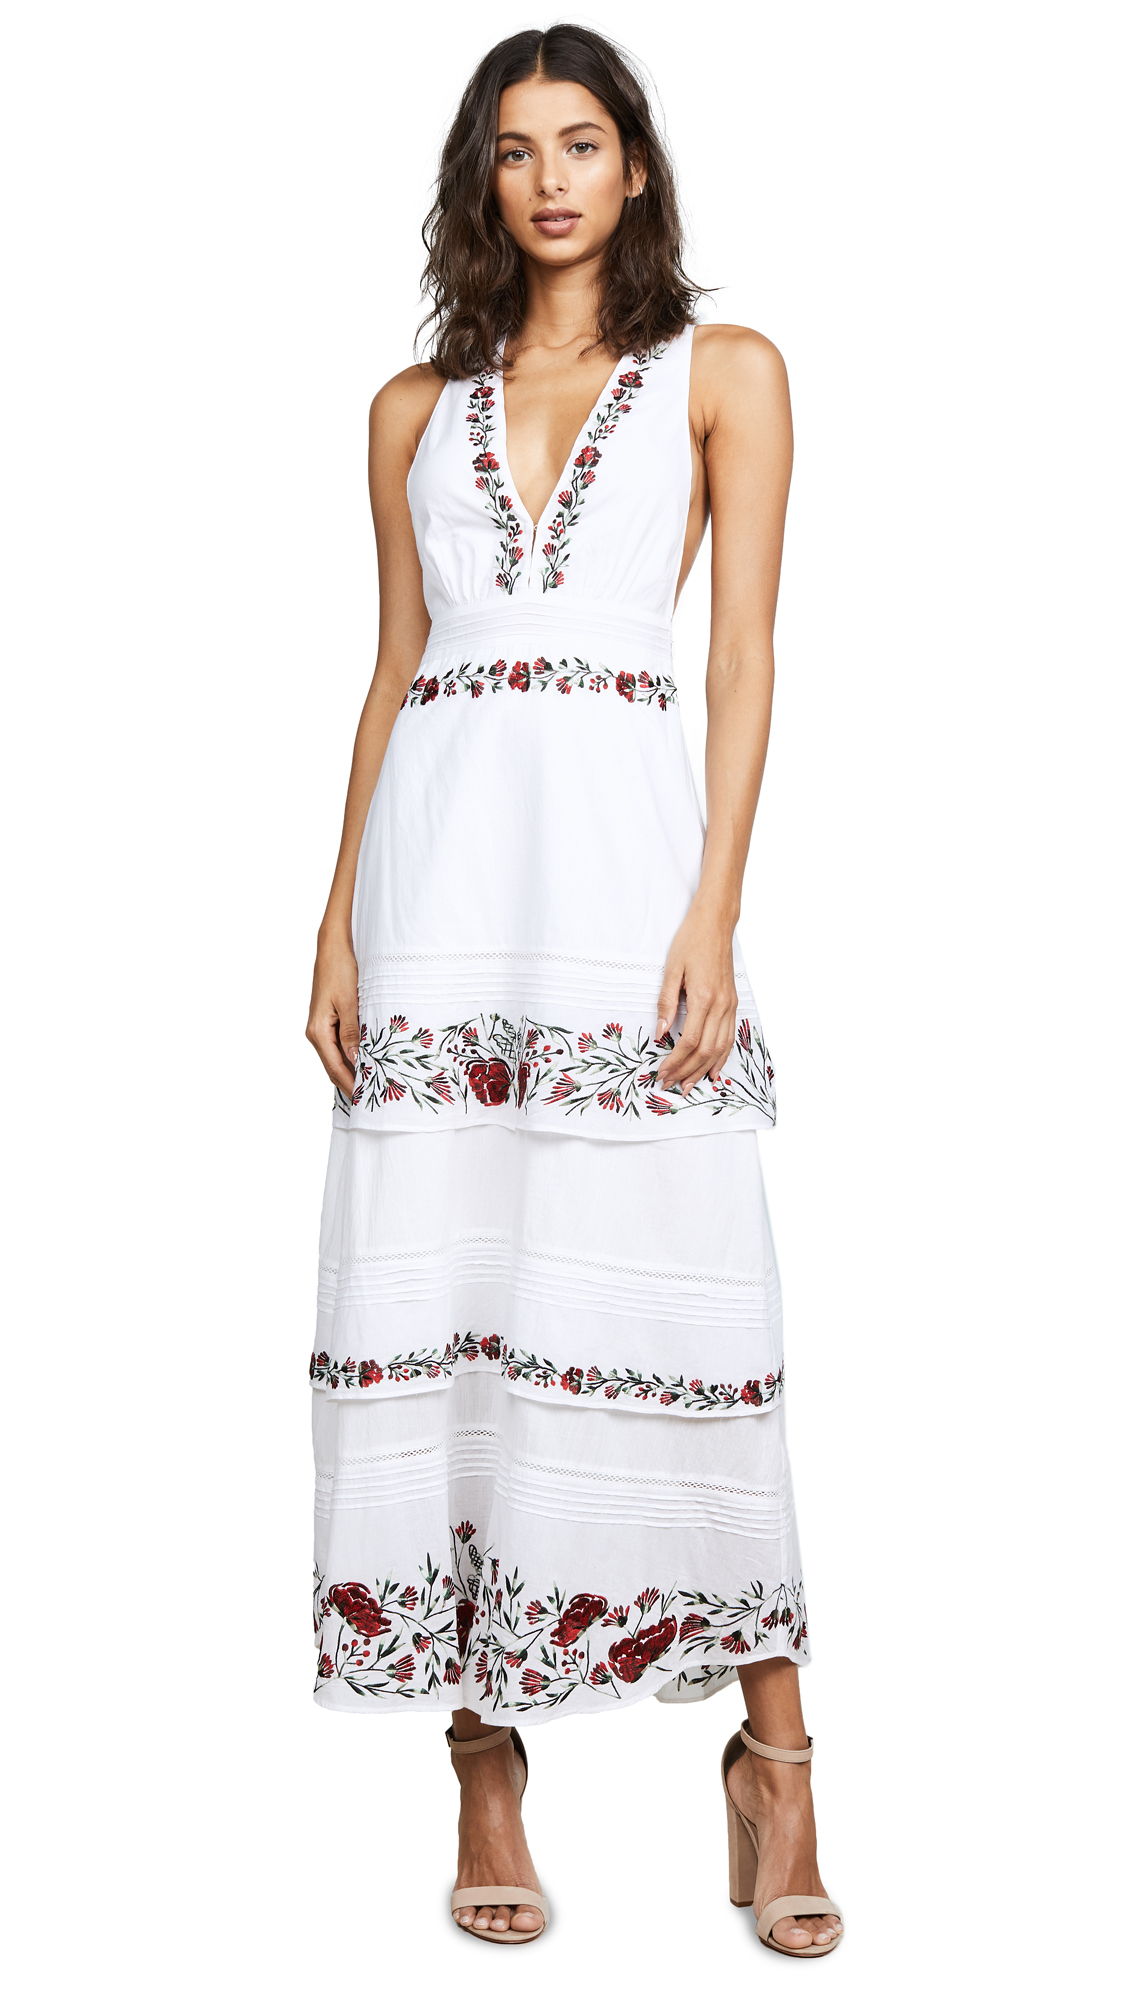 Saylor Amy Maxi Dress